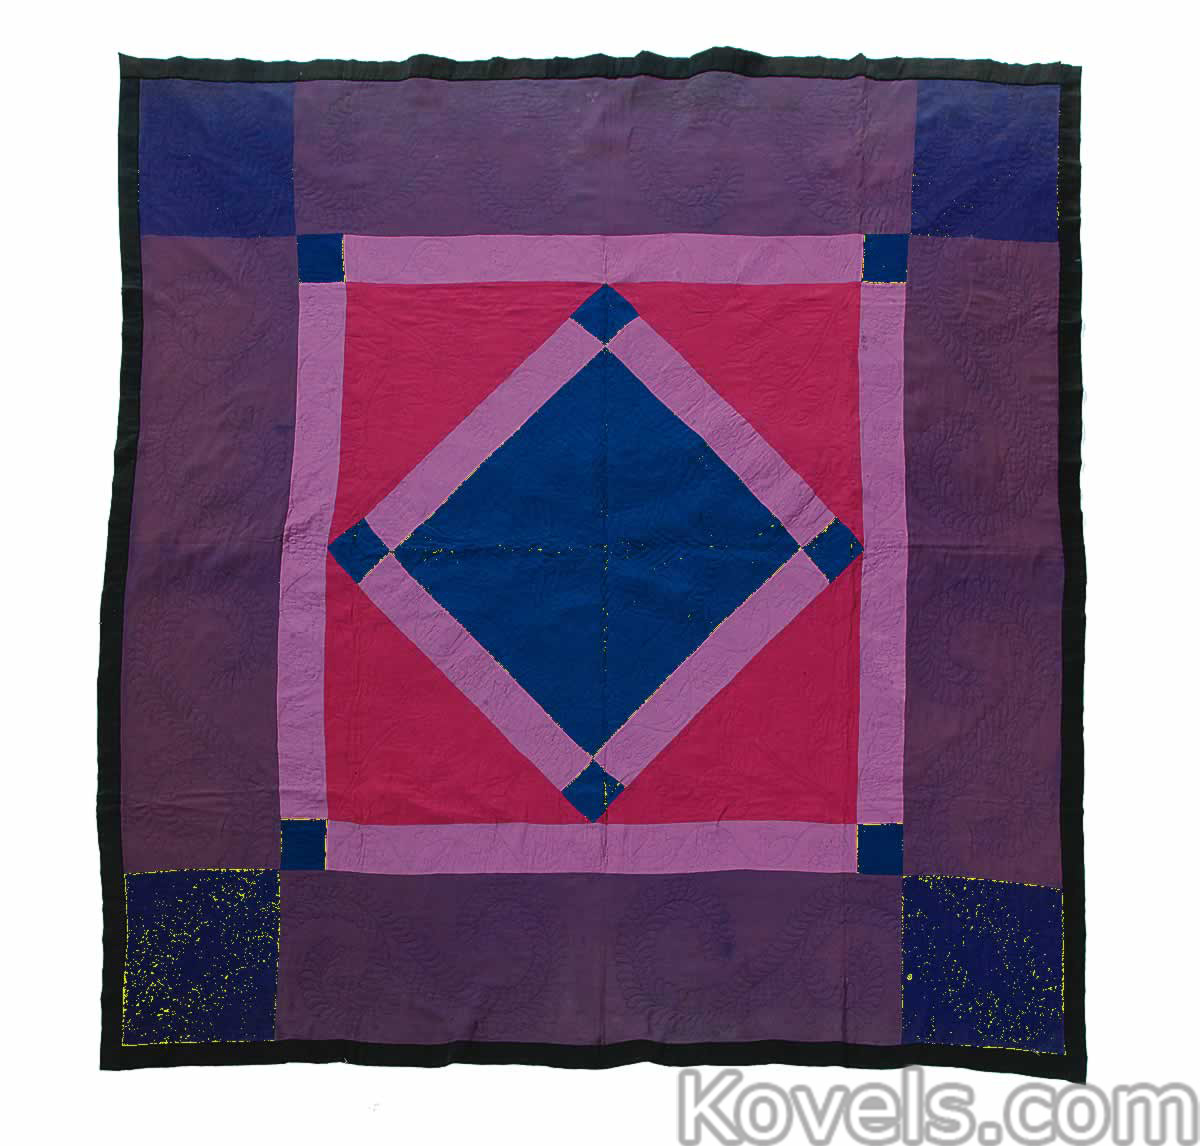 quilt-amish-diamond-in-square-ga031215-0206.jpg